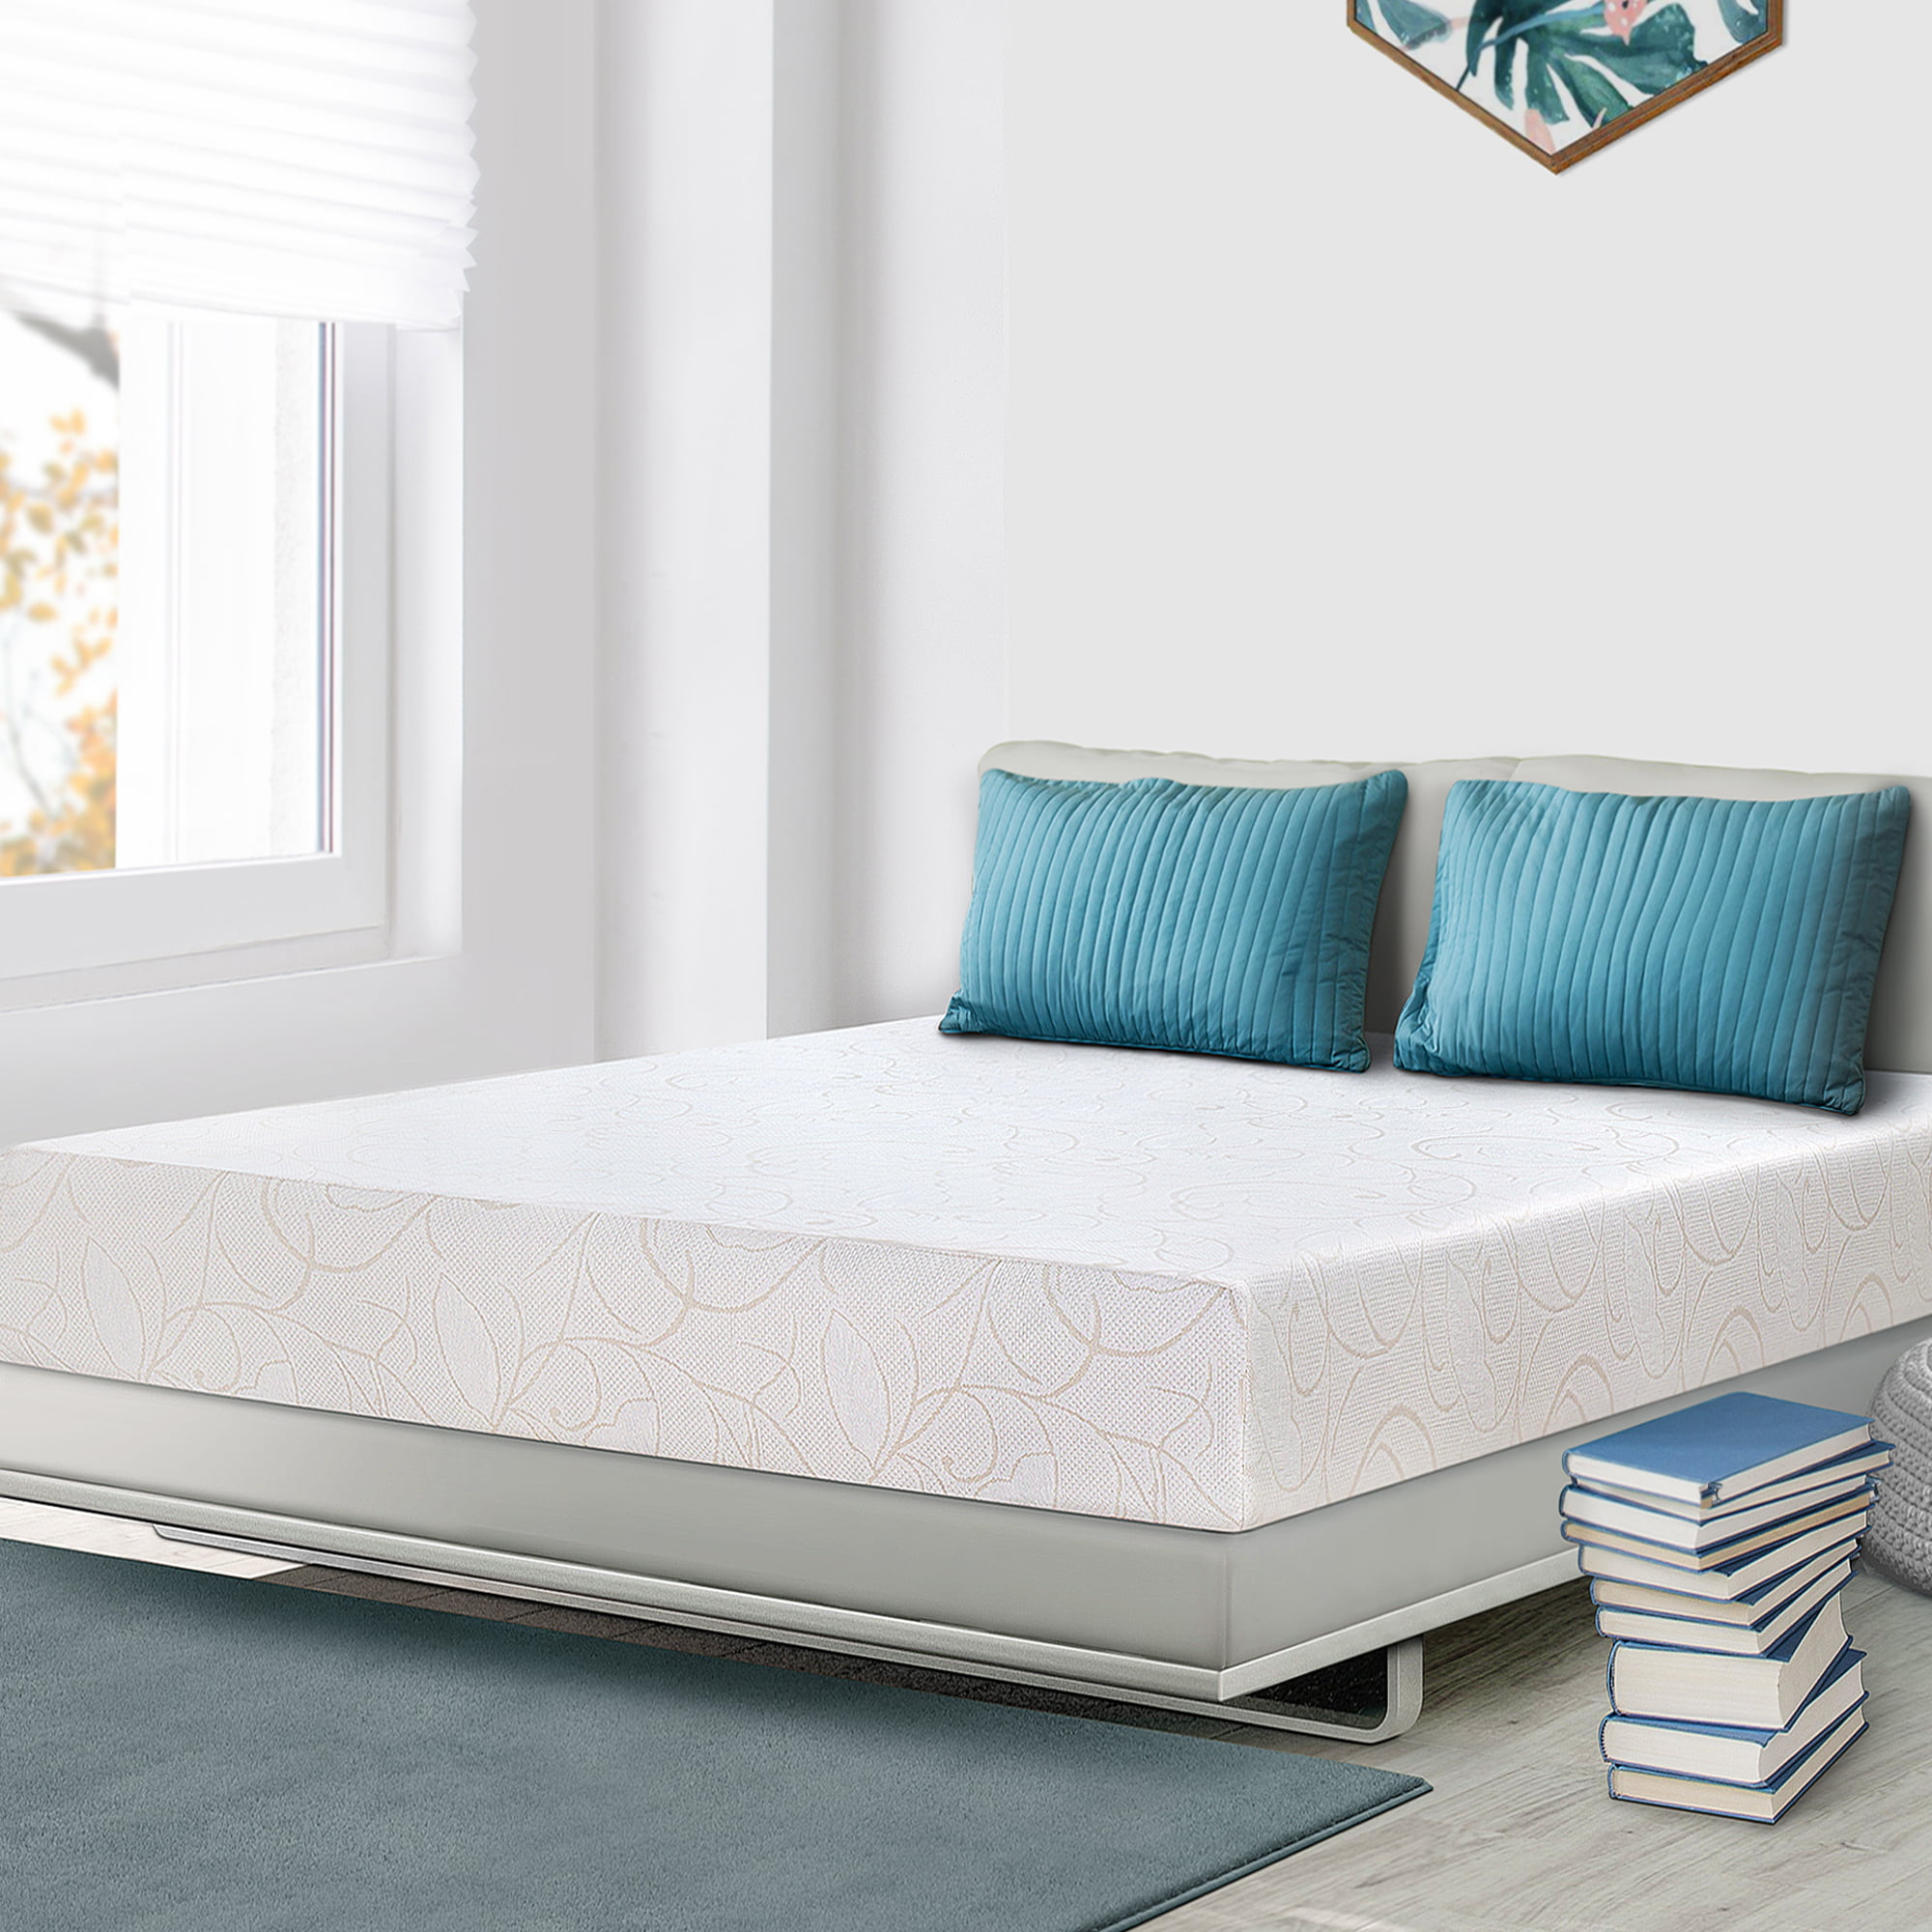 "GranRest 7"" Memory Foam Mattress, Medium Firm, Full - Walmart.com"